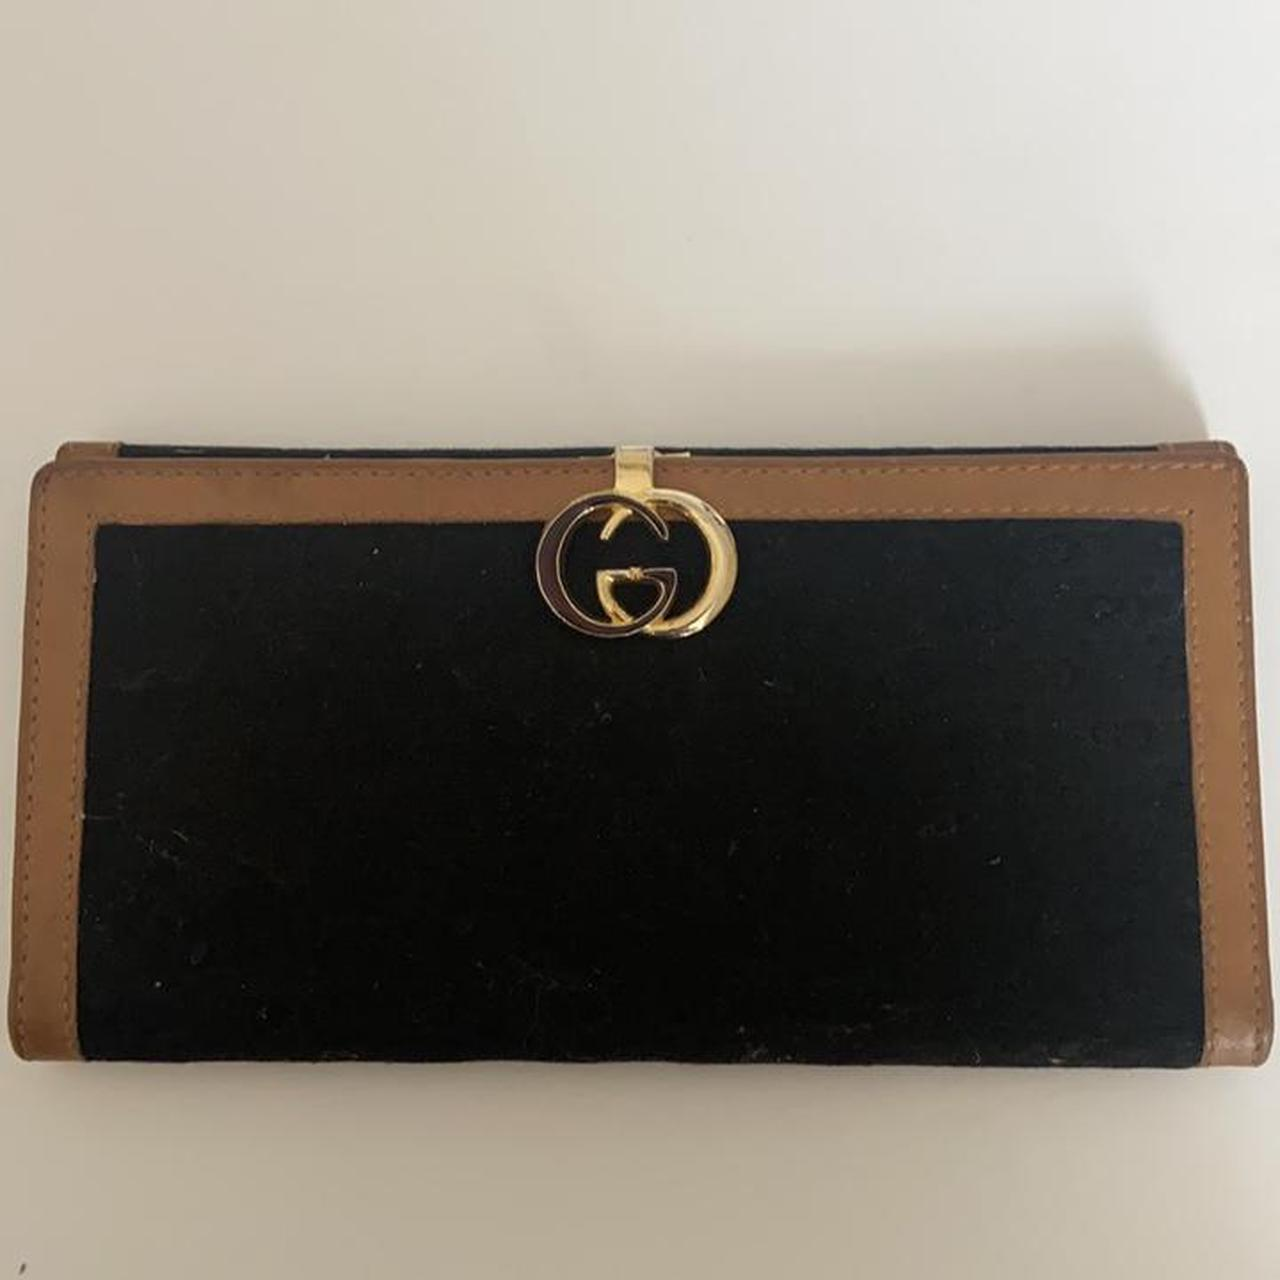 Product Image 1 - Vintage gucci wallet! comes with